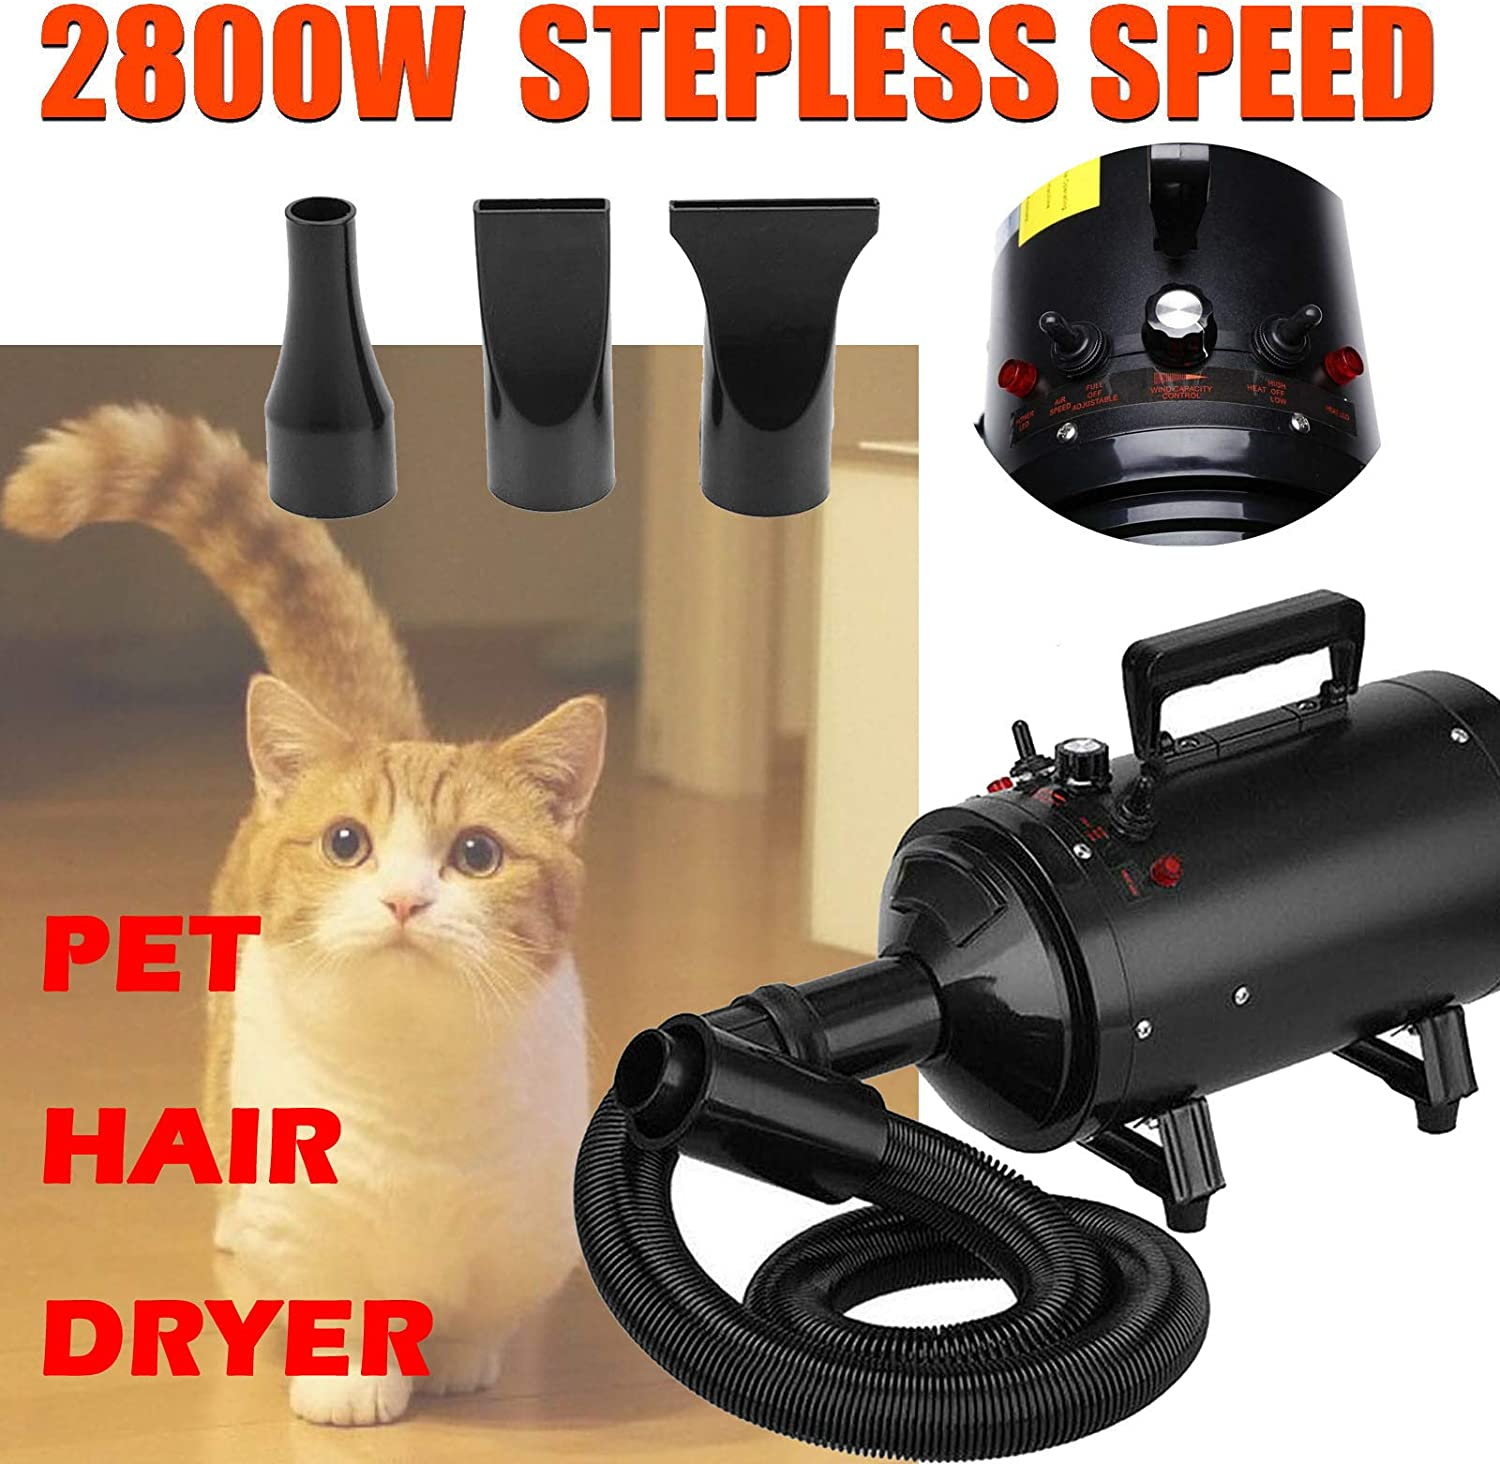 Pet Hair Dryer Cat Dog Grooming Shower Bath Blower 2800W 2 Wind Speed Adjustable Temperature Safety Heater Low Noise Dryer Blaster All Season Use 2.5M Flexible Hose with 3 Nozzles